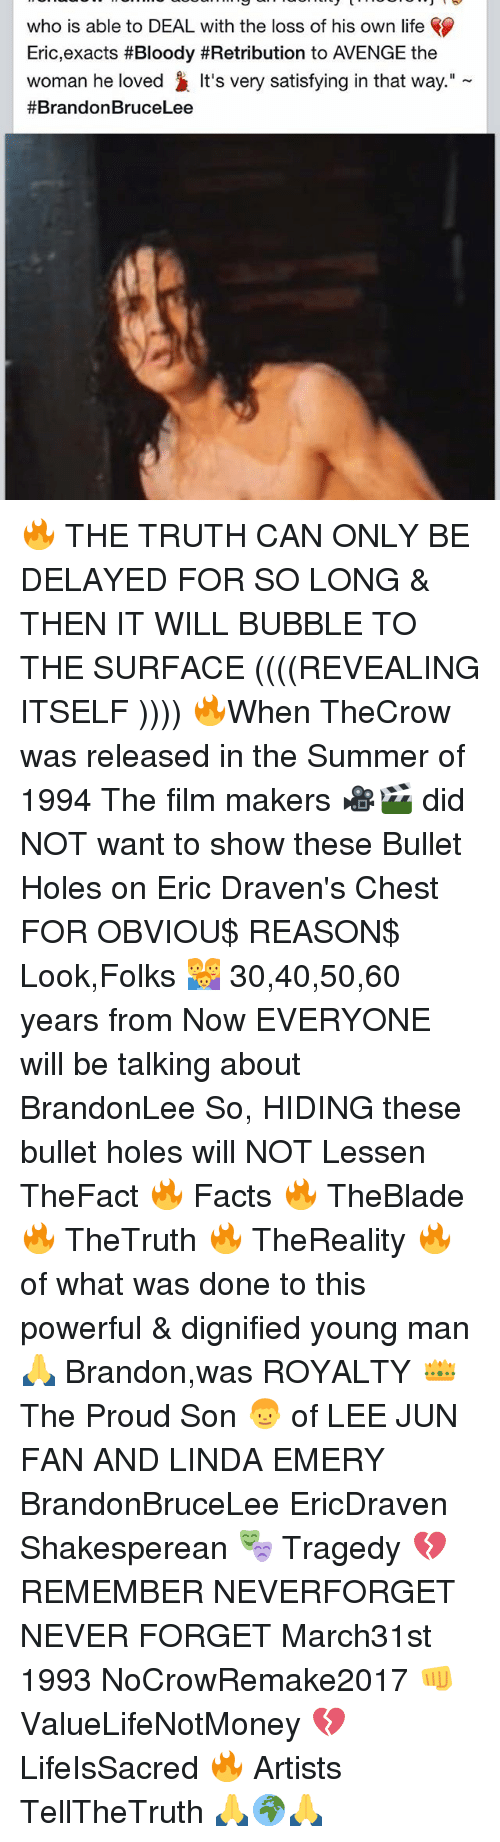 """lee jun fan: who is able to DEAL with the loss of his own life  Eric,exacts #Bloody #Retribution to VENGE the  woman he loved It's very satisfying in that way.""""  #Brandon BruceLee 🔥 THE TRUTH CAN ONLY BE DELAYED FOR SO LONG & THEN IT WILL BUBBLE TO THE SURFACE ((((REVEALING ITSELF )))) 🔥When TheCrow was released in the Summer of 1994 The film makers 🎥🎬 did NOT want to show these Bullet Holes on Eric Draven's Chest FOR OBVIOU$ REASON$ Look,Folks 👪 30,40,50,60 years from Now EVERYONE will be talking about BrandonLee So, HIDING these bullet holes will NOT Lessen TheFact 🔥 Facts 🔥 TheBlade 🔥 TheTruth 🔥 TheReality 🔥 of what was done to this powerful & dignified young man 🙏 Brandon,was ROYALTY 👑 The Proud Son 👦 of LEE JUN FAN AND LINDA EMERY BrandonBruceLee EricDraven Shakesperean 🎭 Tragedy 💔 REMEMBER NEVERFORGET NEVER FORGET March31st 1993 NoCrowRemake2017 👊 ValueLifeNotMoney 💔 LifeIsSacred 🔥 Artists TellTheTruth 🙏🌍🙏"""